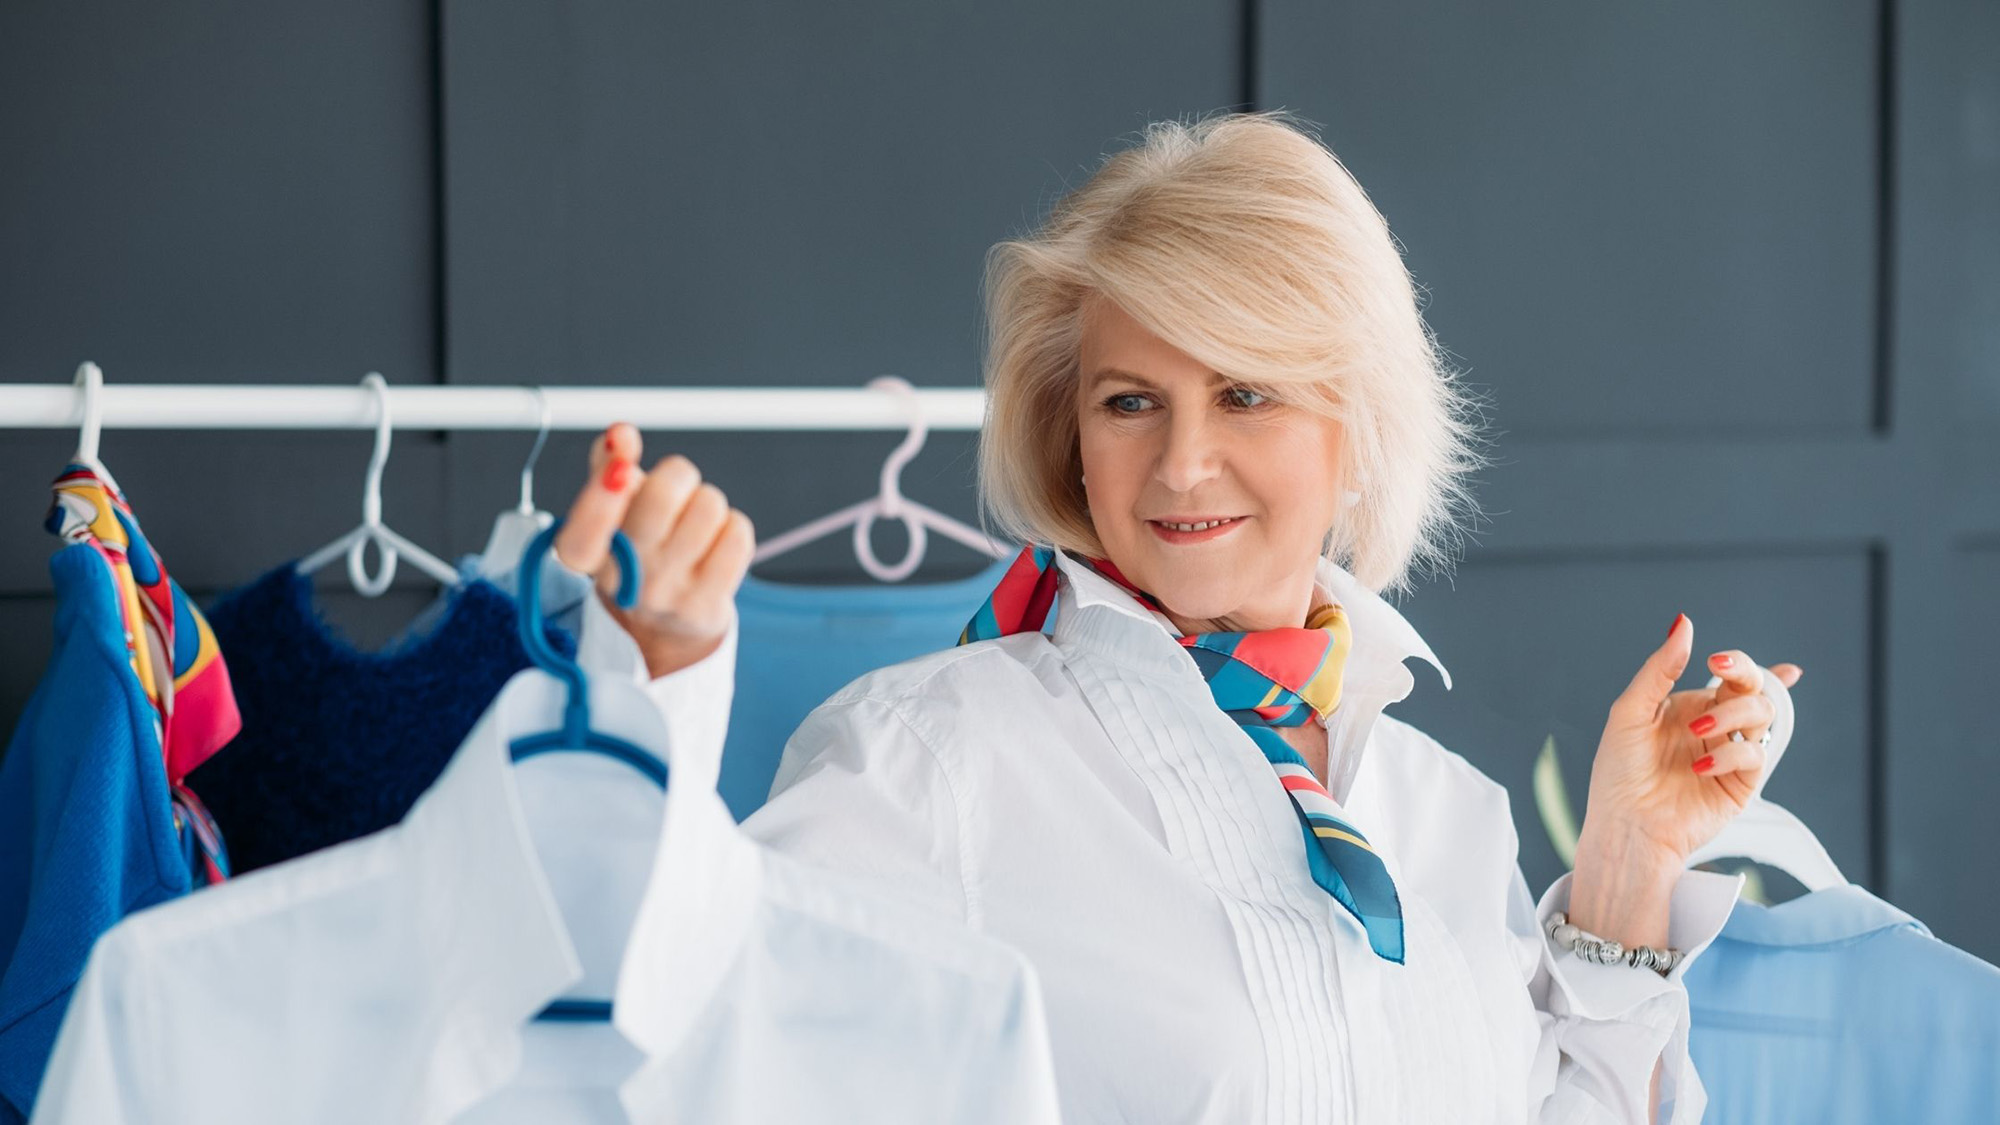 An image consultant works with her client and finds fashion outfits for her